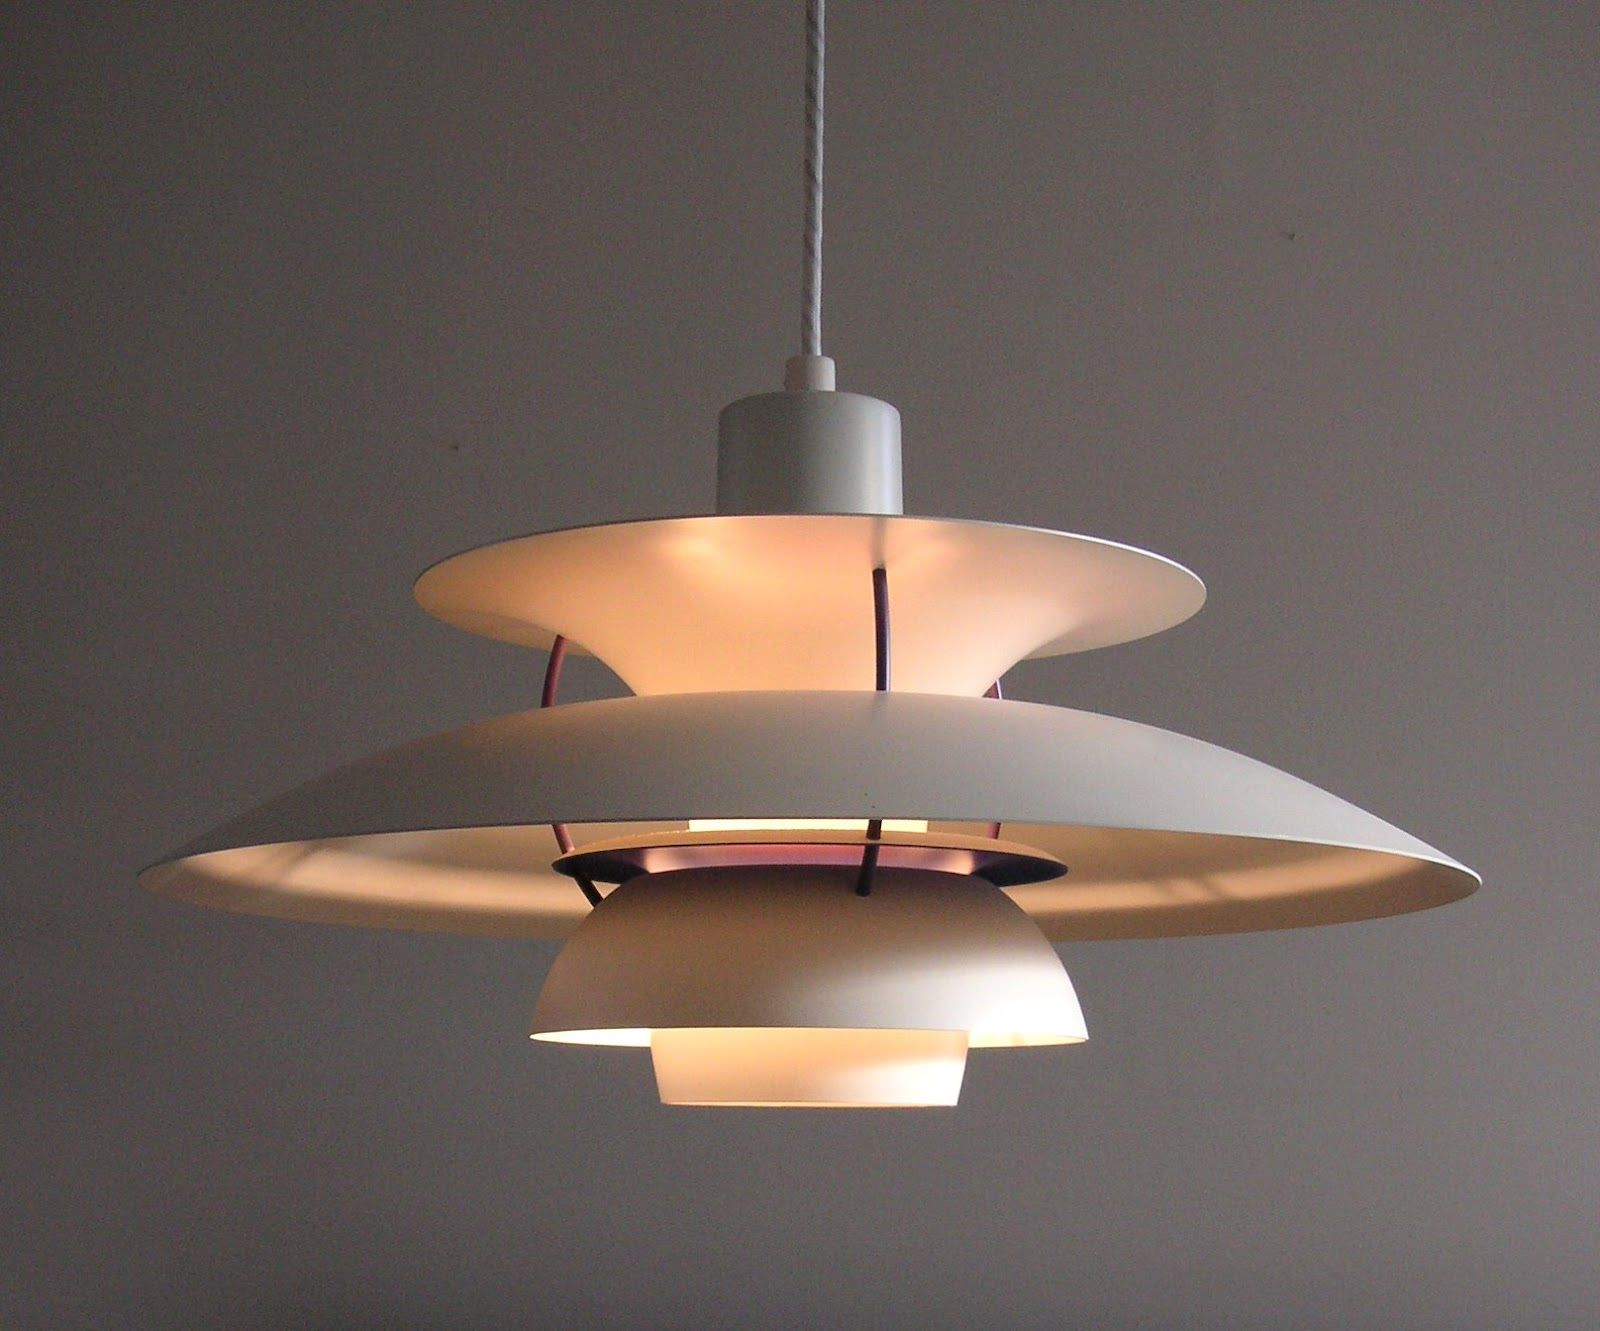 modern dining room light fixture with unique shape of three level